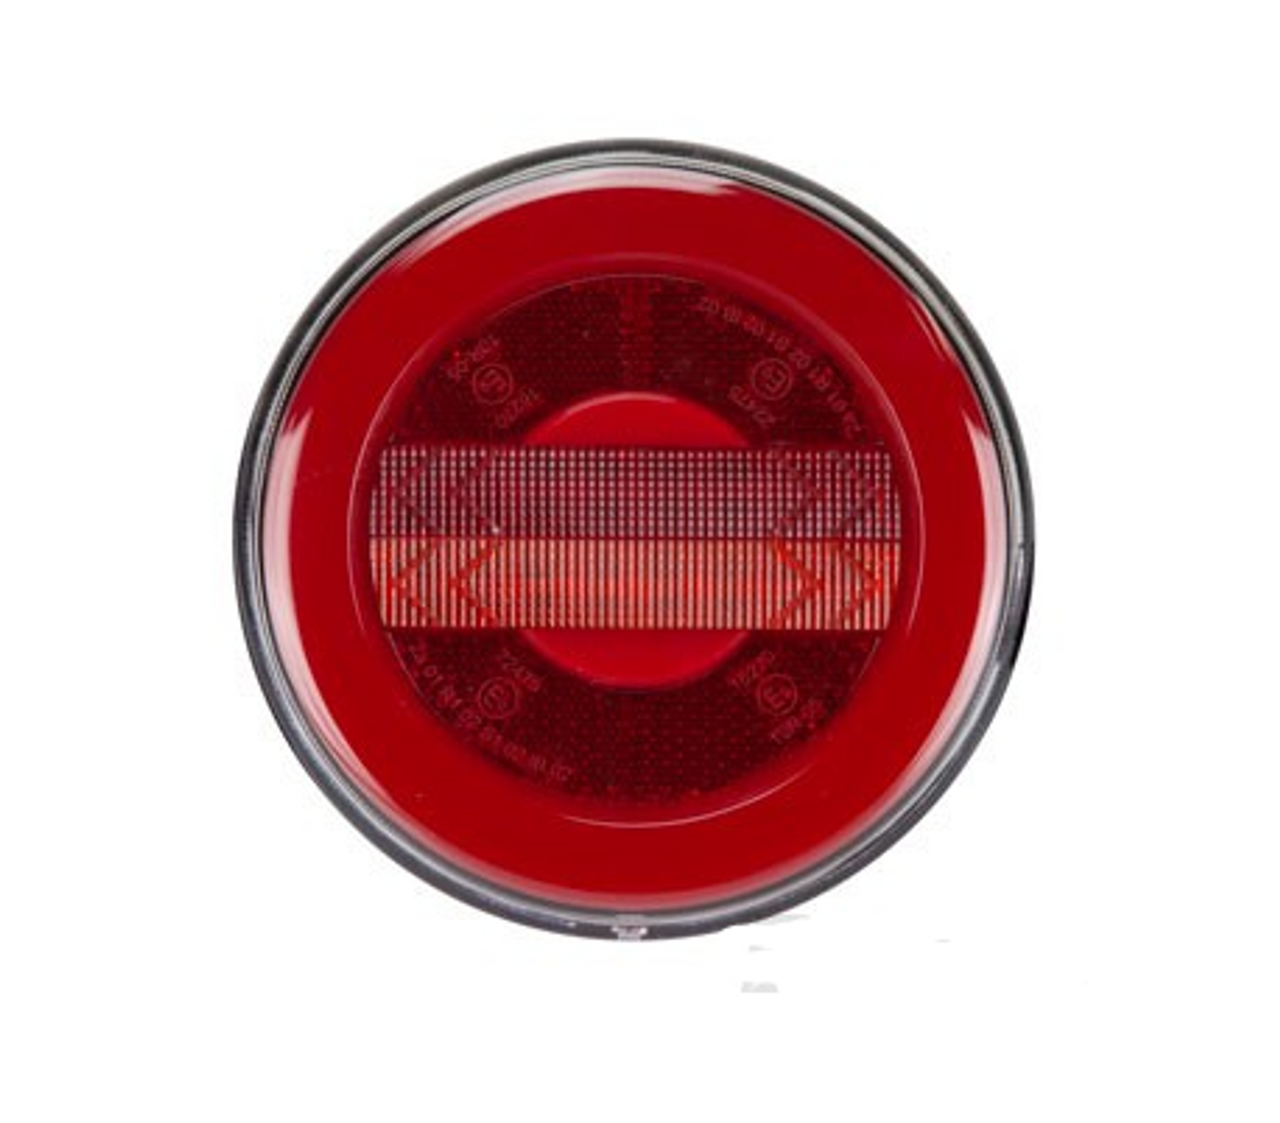 BR122ARR - Stop Tail and Indicator Light with Reflector. Round Stop Tail and Indicator Light. Surface Mount. Glow Tail Light. Multi-Volt 10-30v. RoadVision. Ultimate LED.